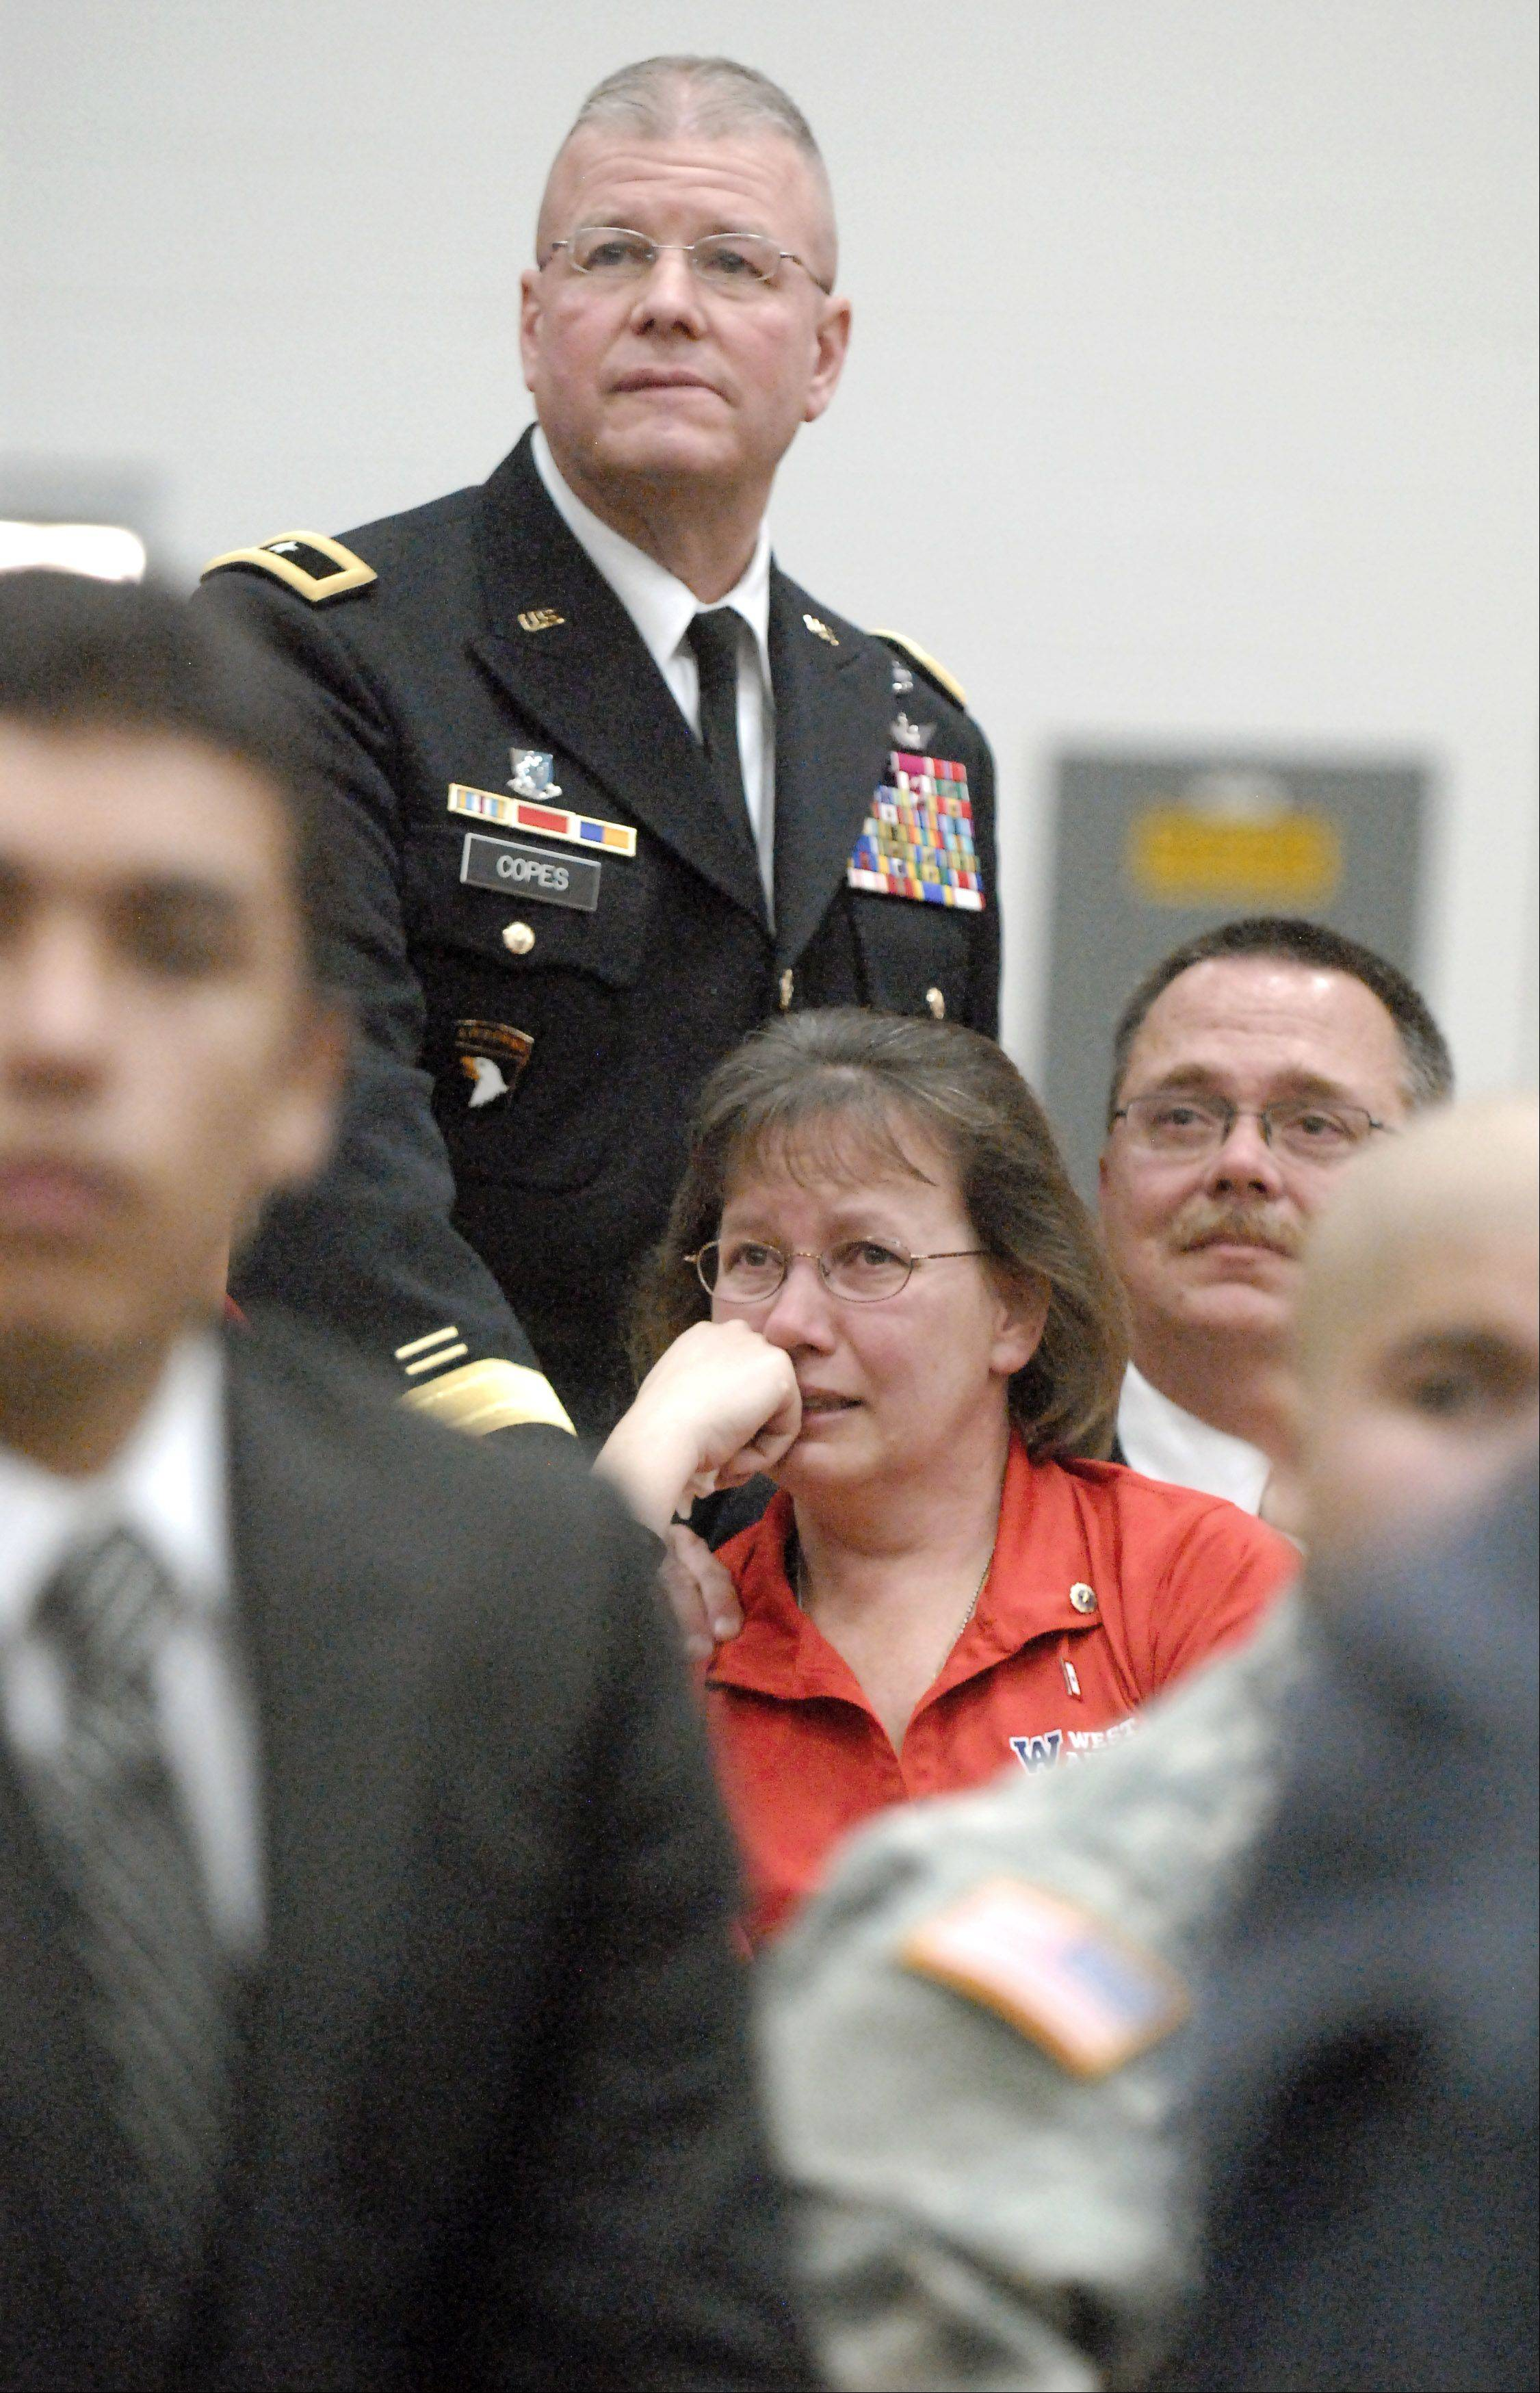 Mary and Bob Patterson of North Aurora are comforted by Brig. Gen. Brian Copes of the Indiana National Guard as they watch a video tribute to the Pattersons' son and West Aurora High School alumni, Spc. Christopher Patterson, at West Aurora High School's Veterans Day celebration on Friday. Patterson was killed Jan. 6 in Afghanistan.